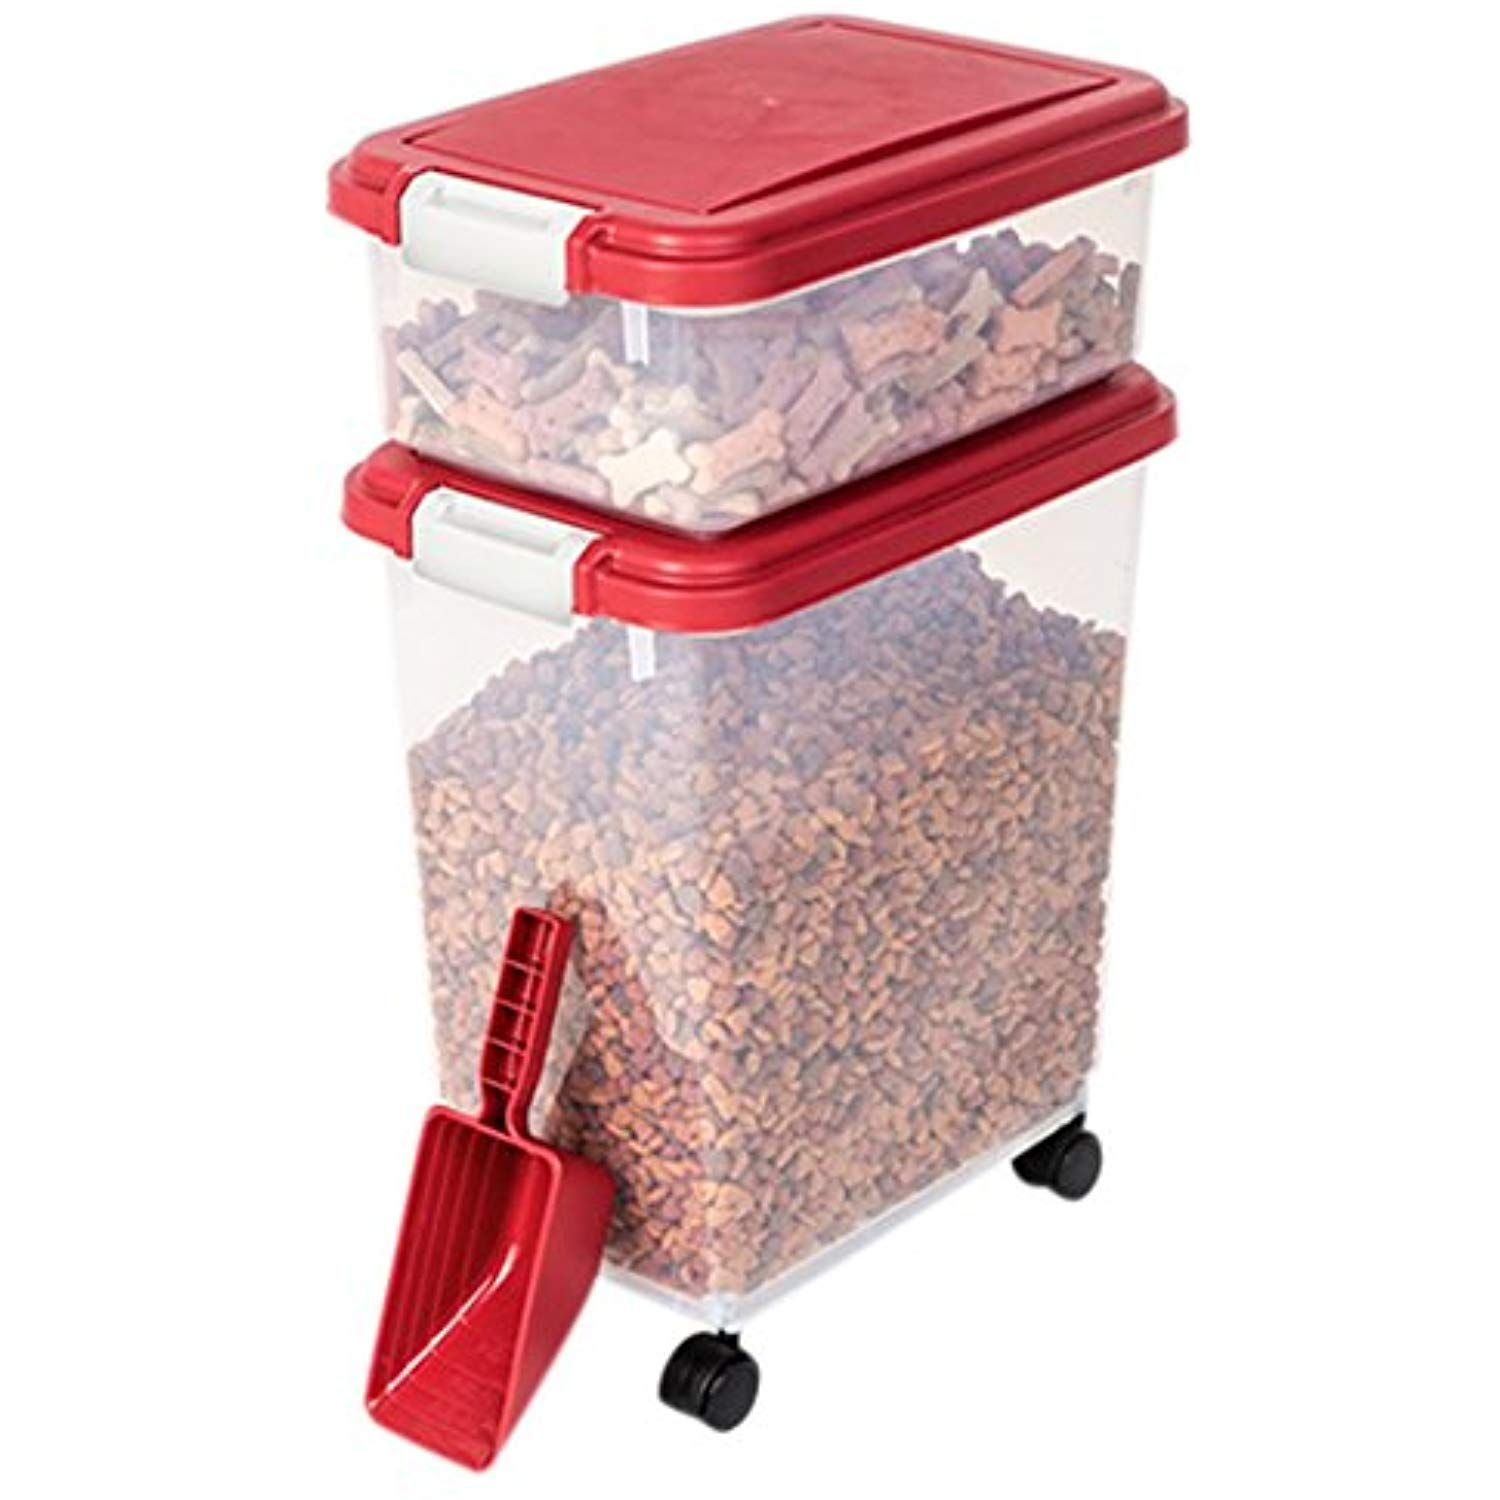 Myriad Pet Solutions 3 Piece Pet Food Storage Bin With Scoop Red